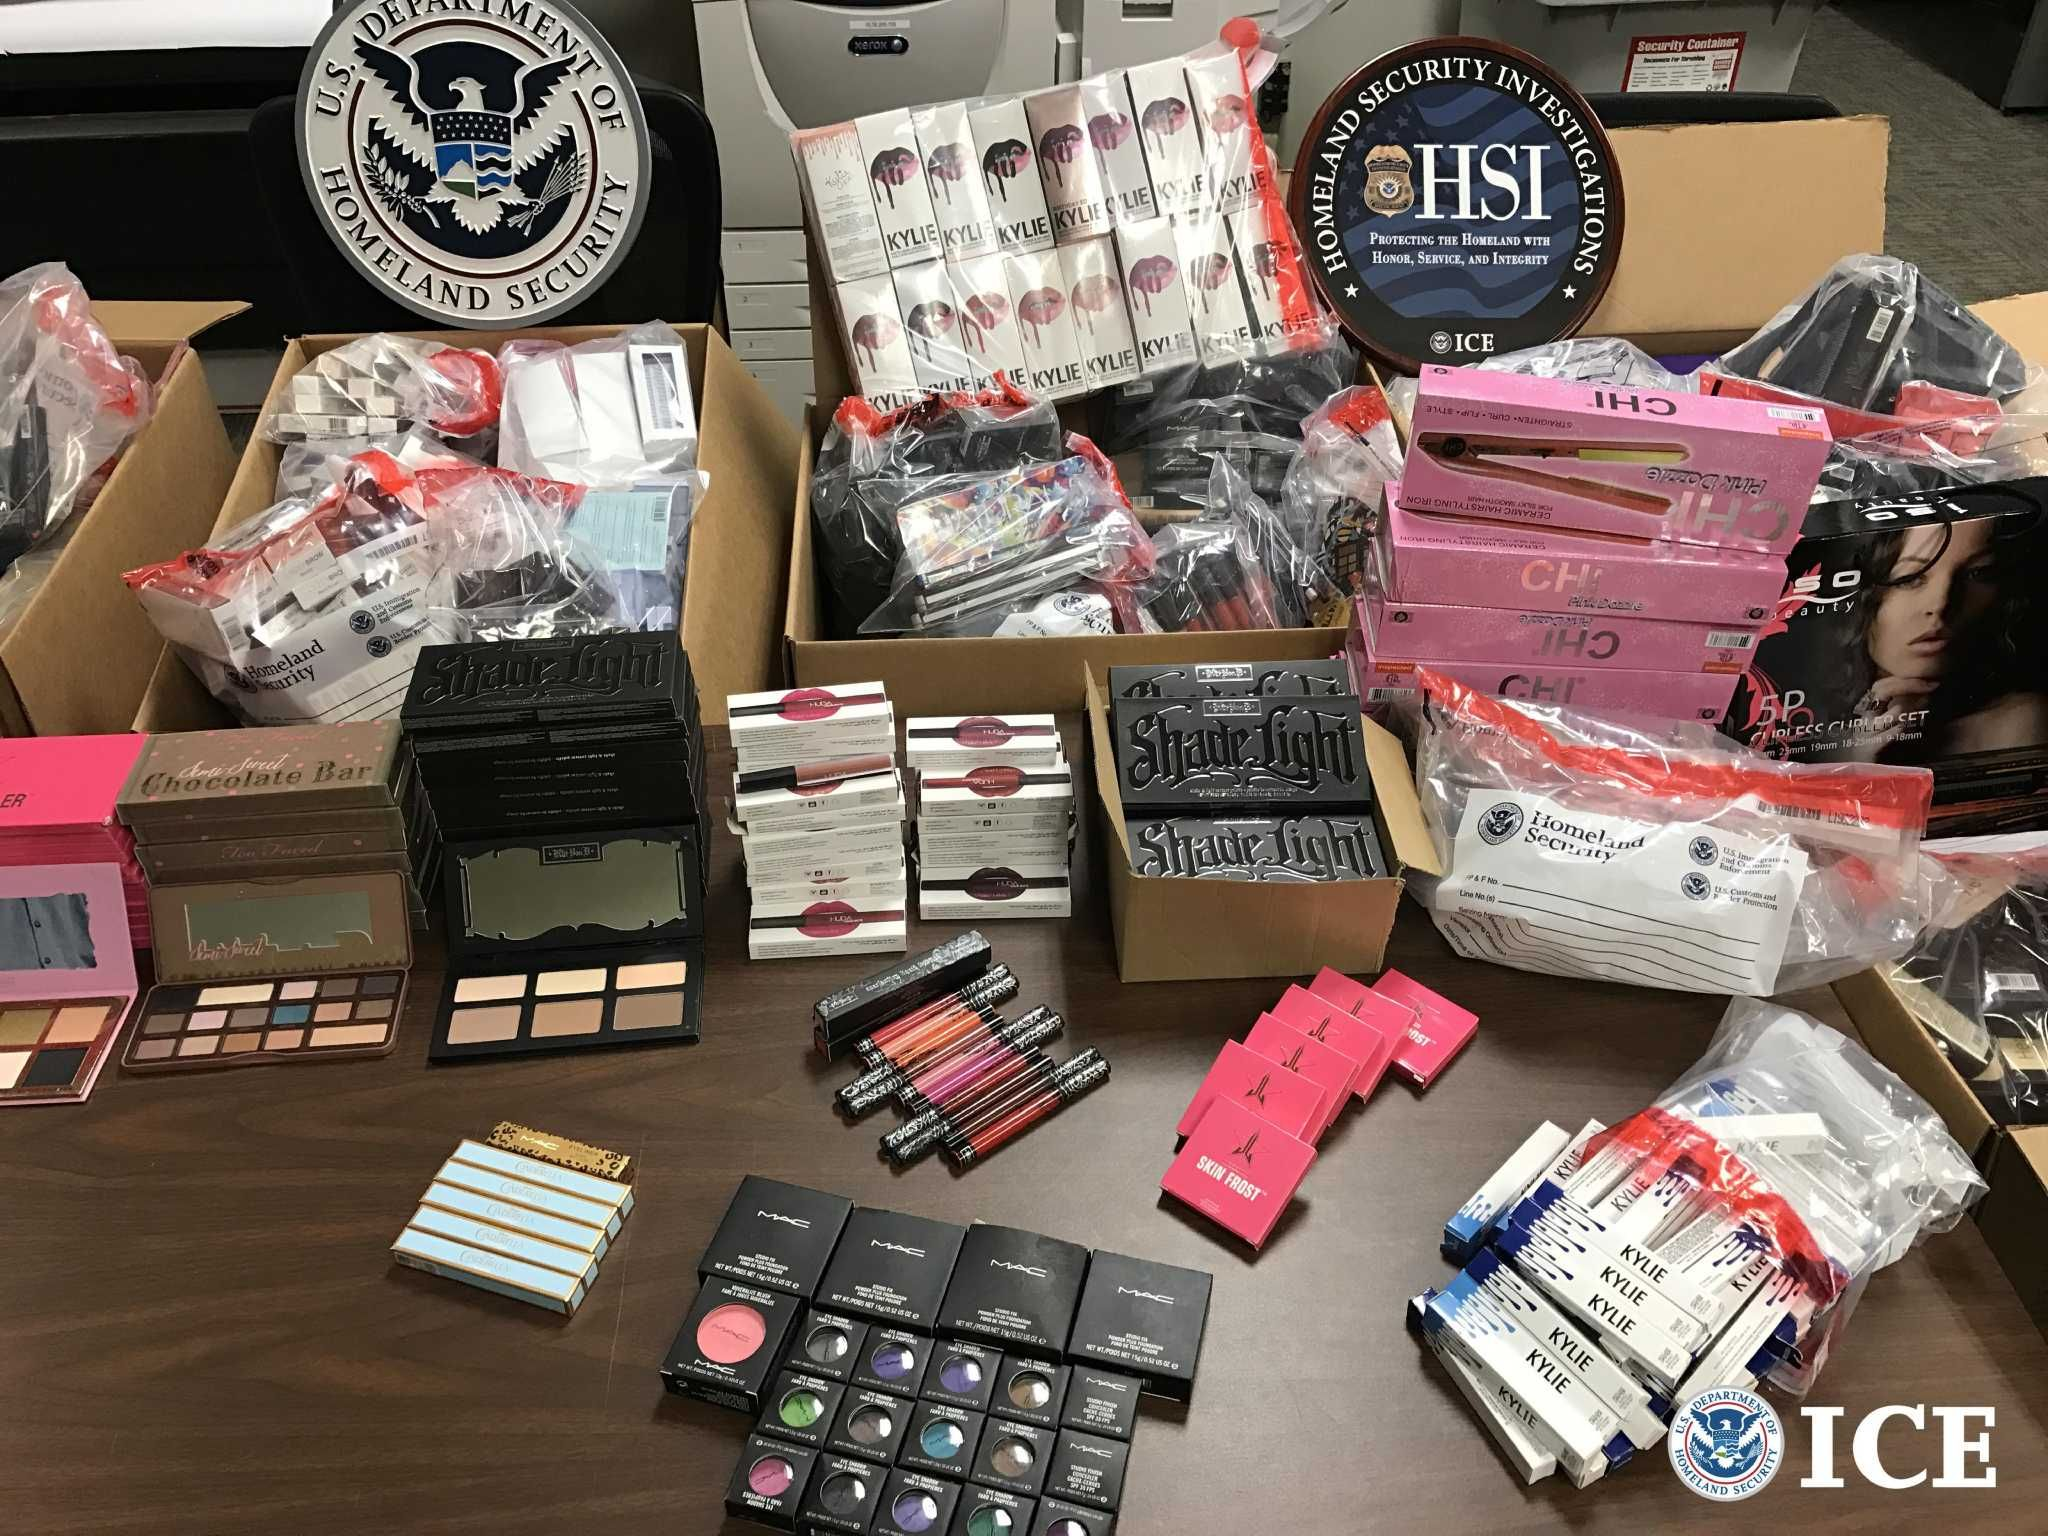 South Bay woman suspected of trying to sell harmful fake